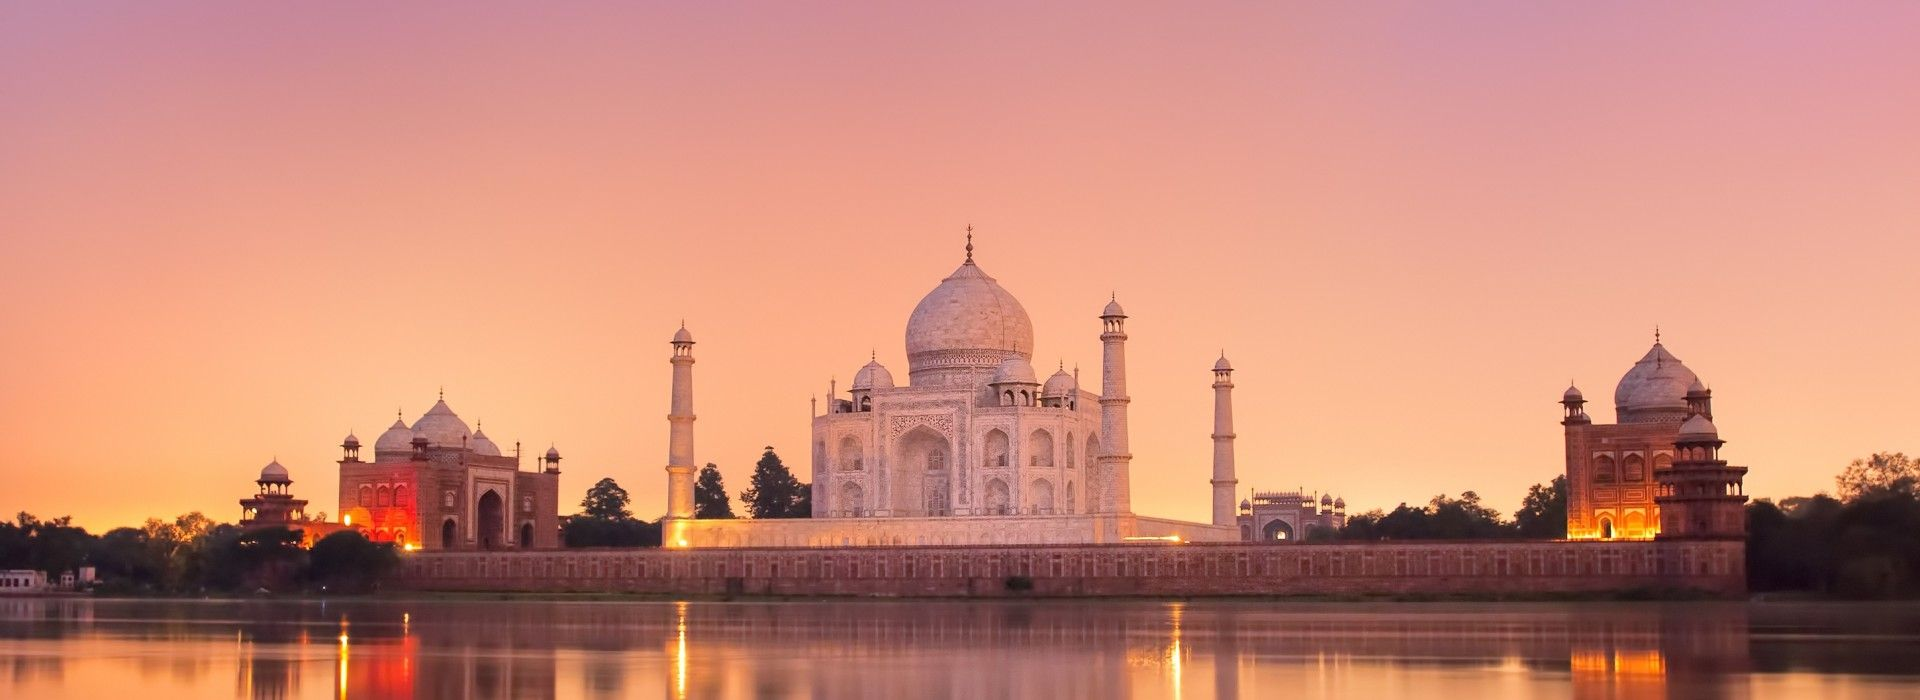 Beach, romance, getaways and relaxation Tours in Bangalore